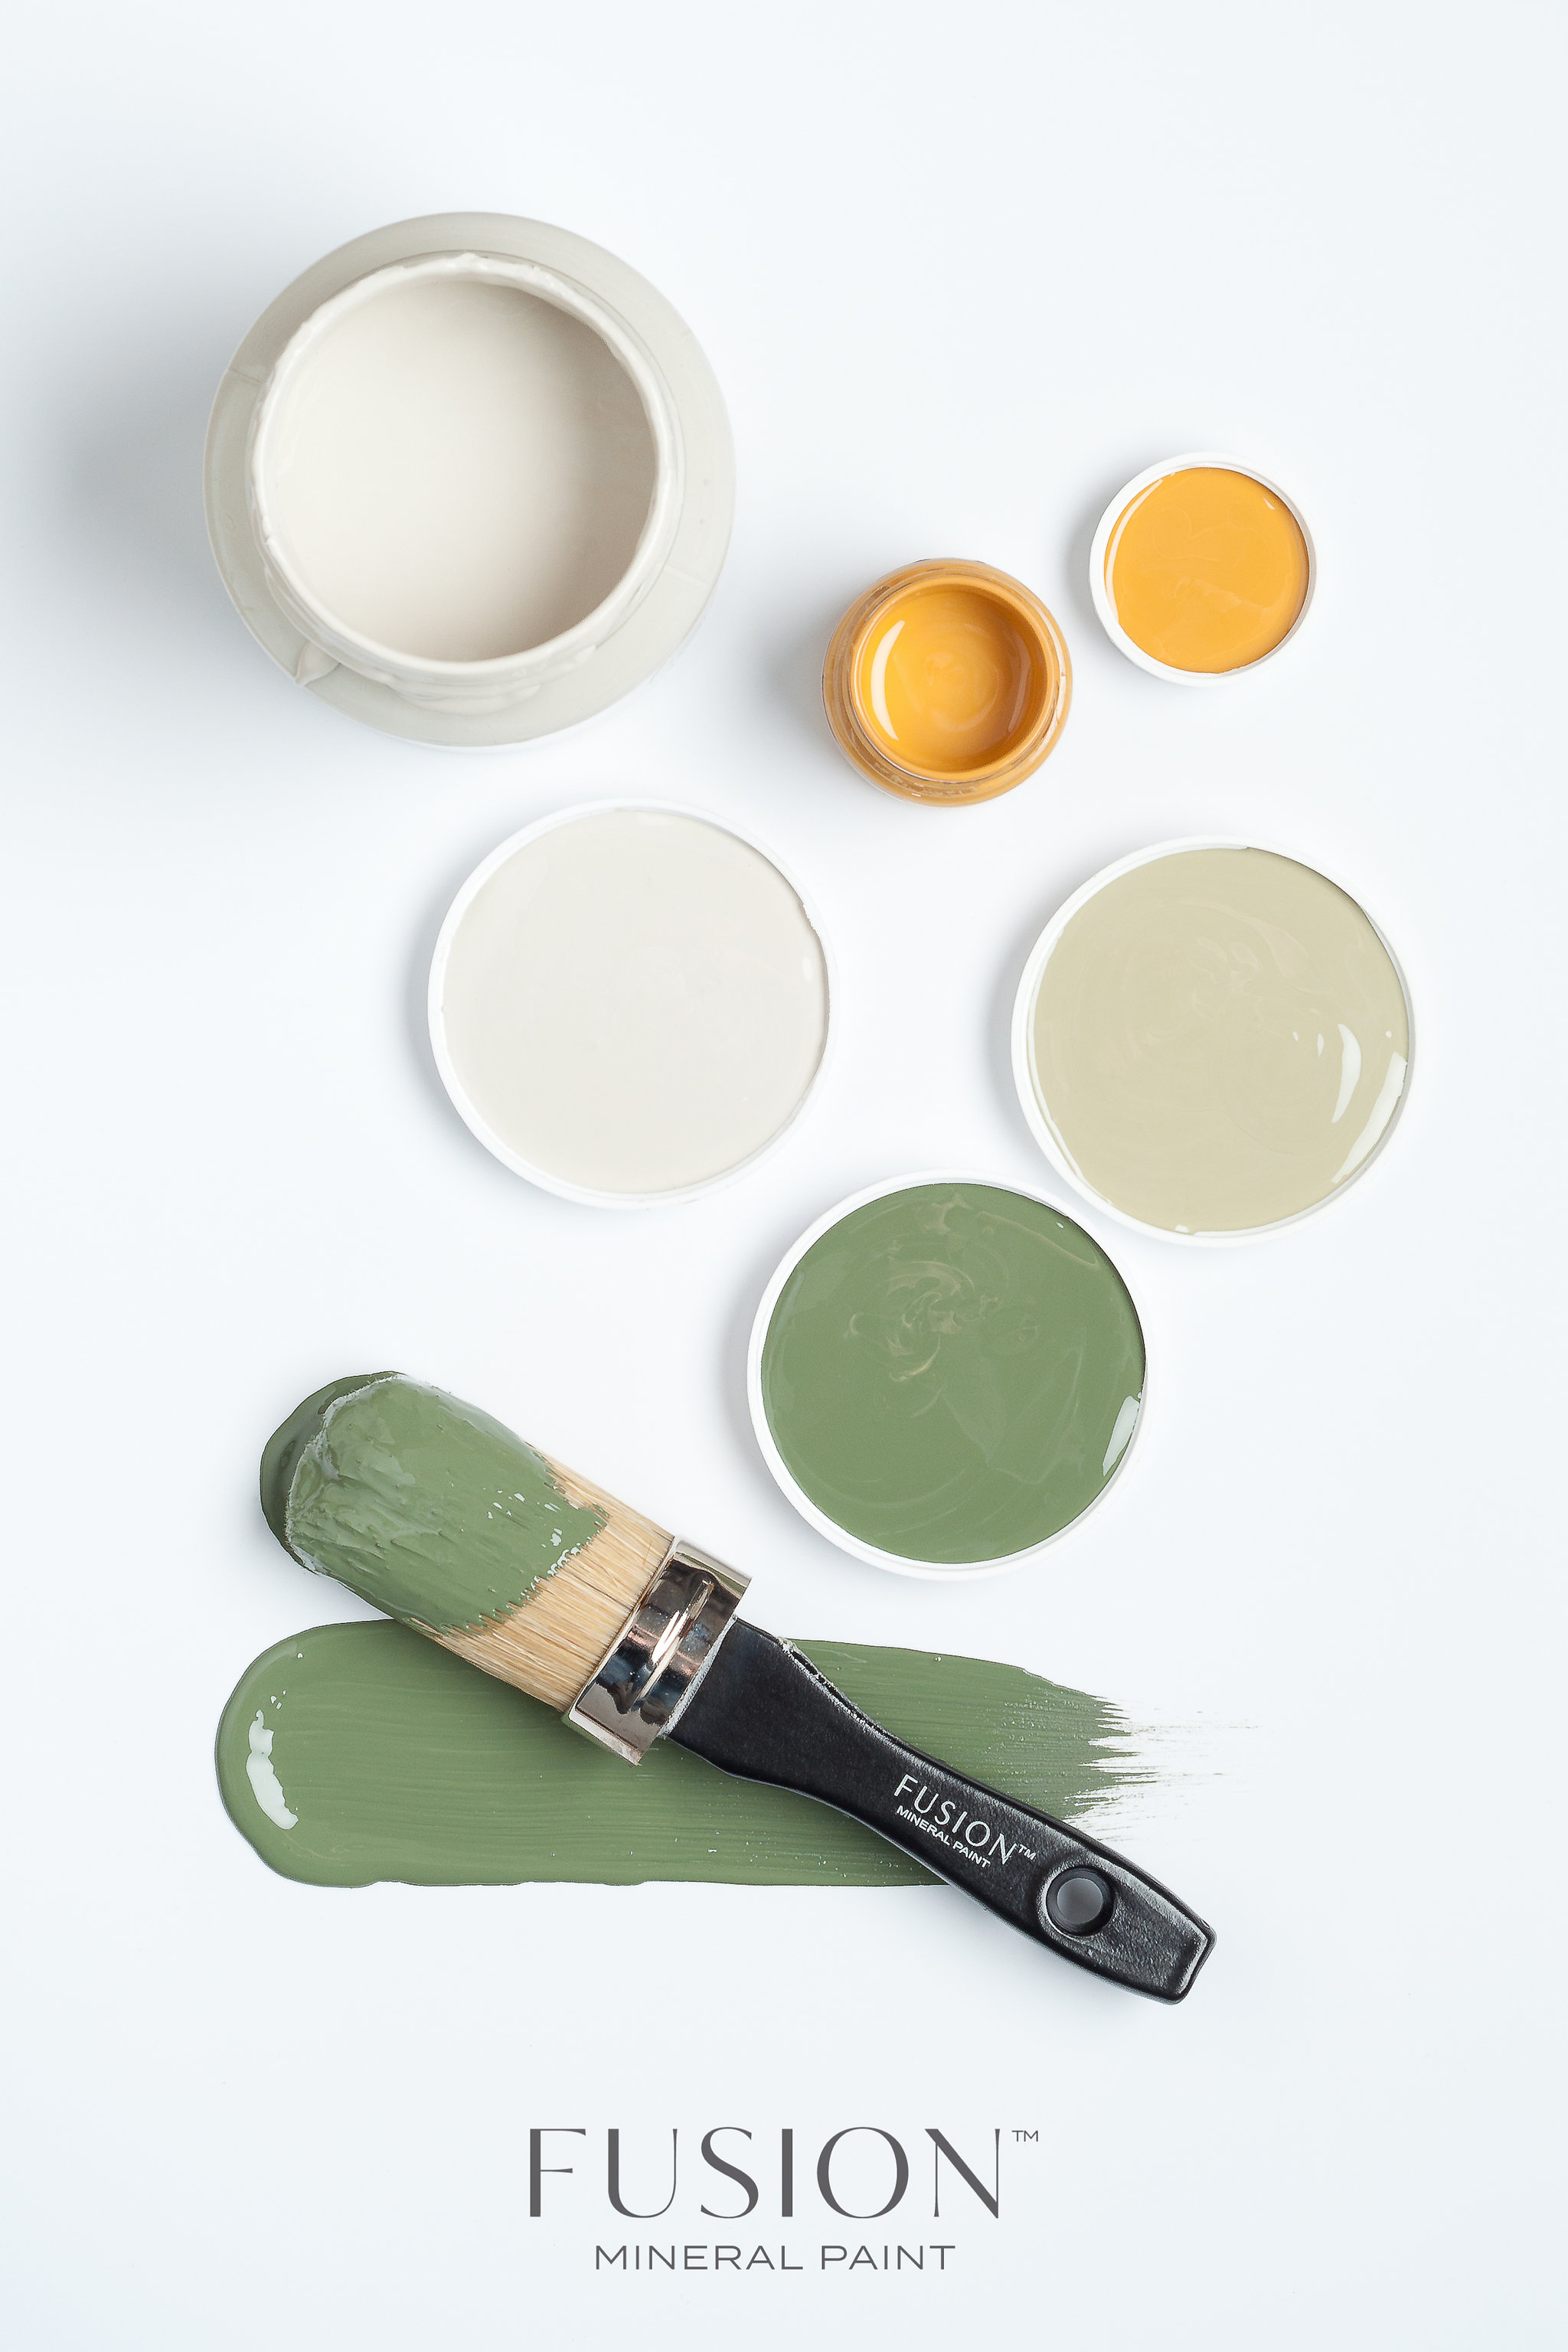 I guess I would best describe these Fusion Mineral Paint colours as earth tones. The yellow is called Mustard. Below Mustard to the left is Putty and to the right is Lichen. The green is Bayberry.